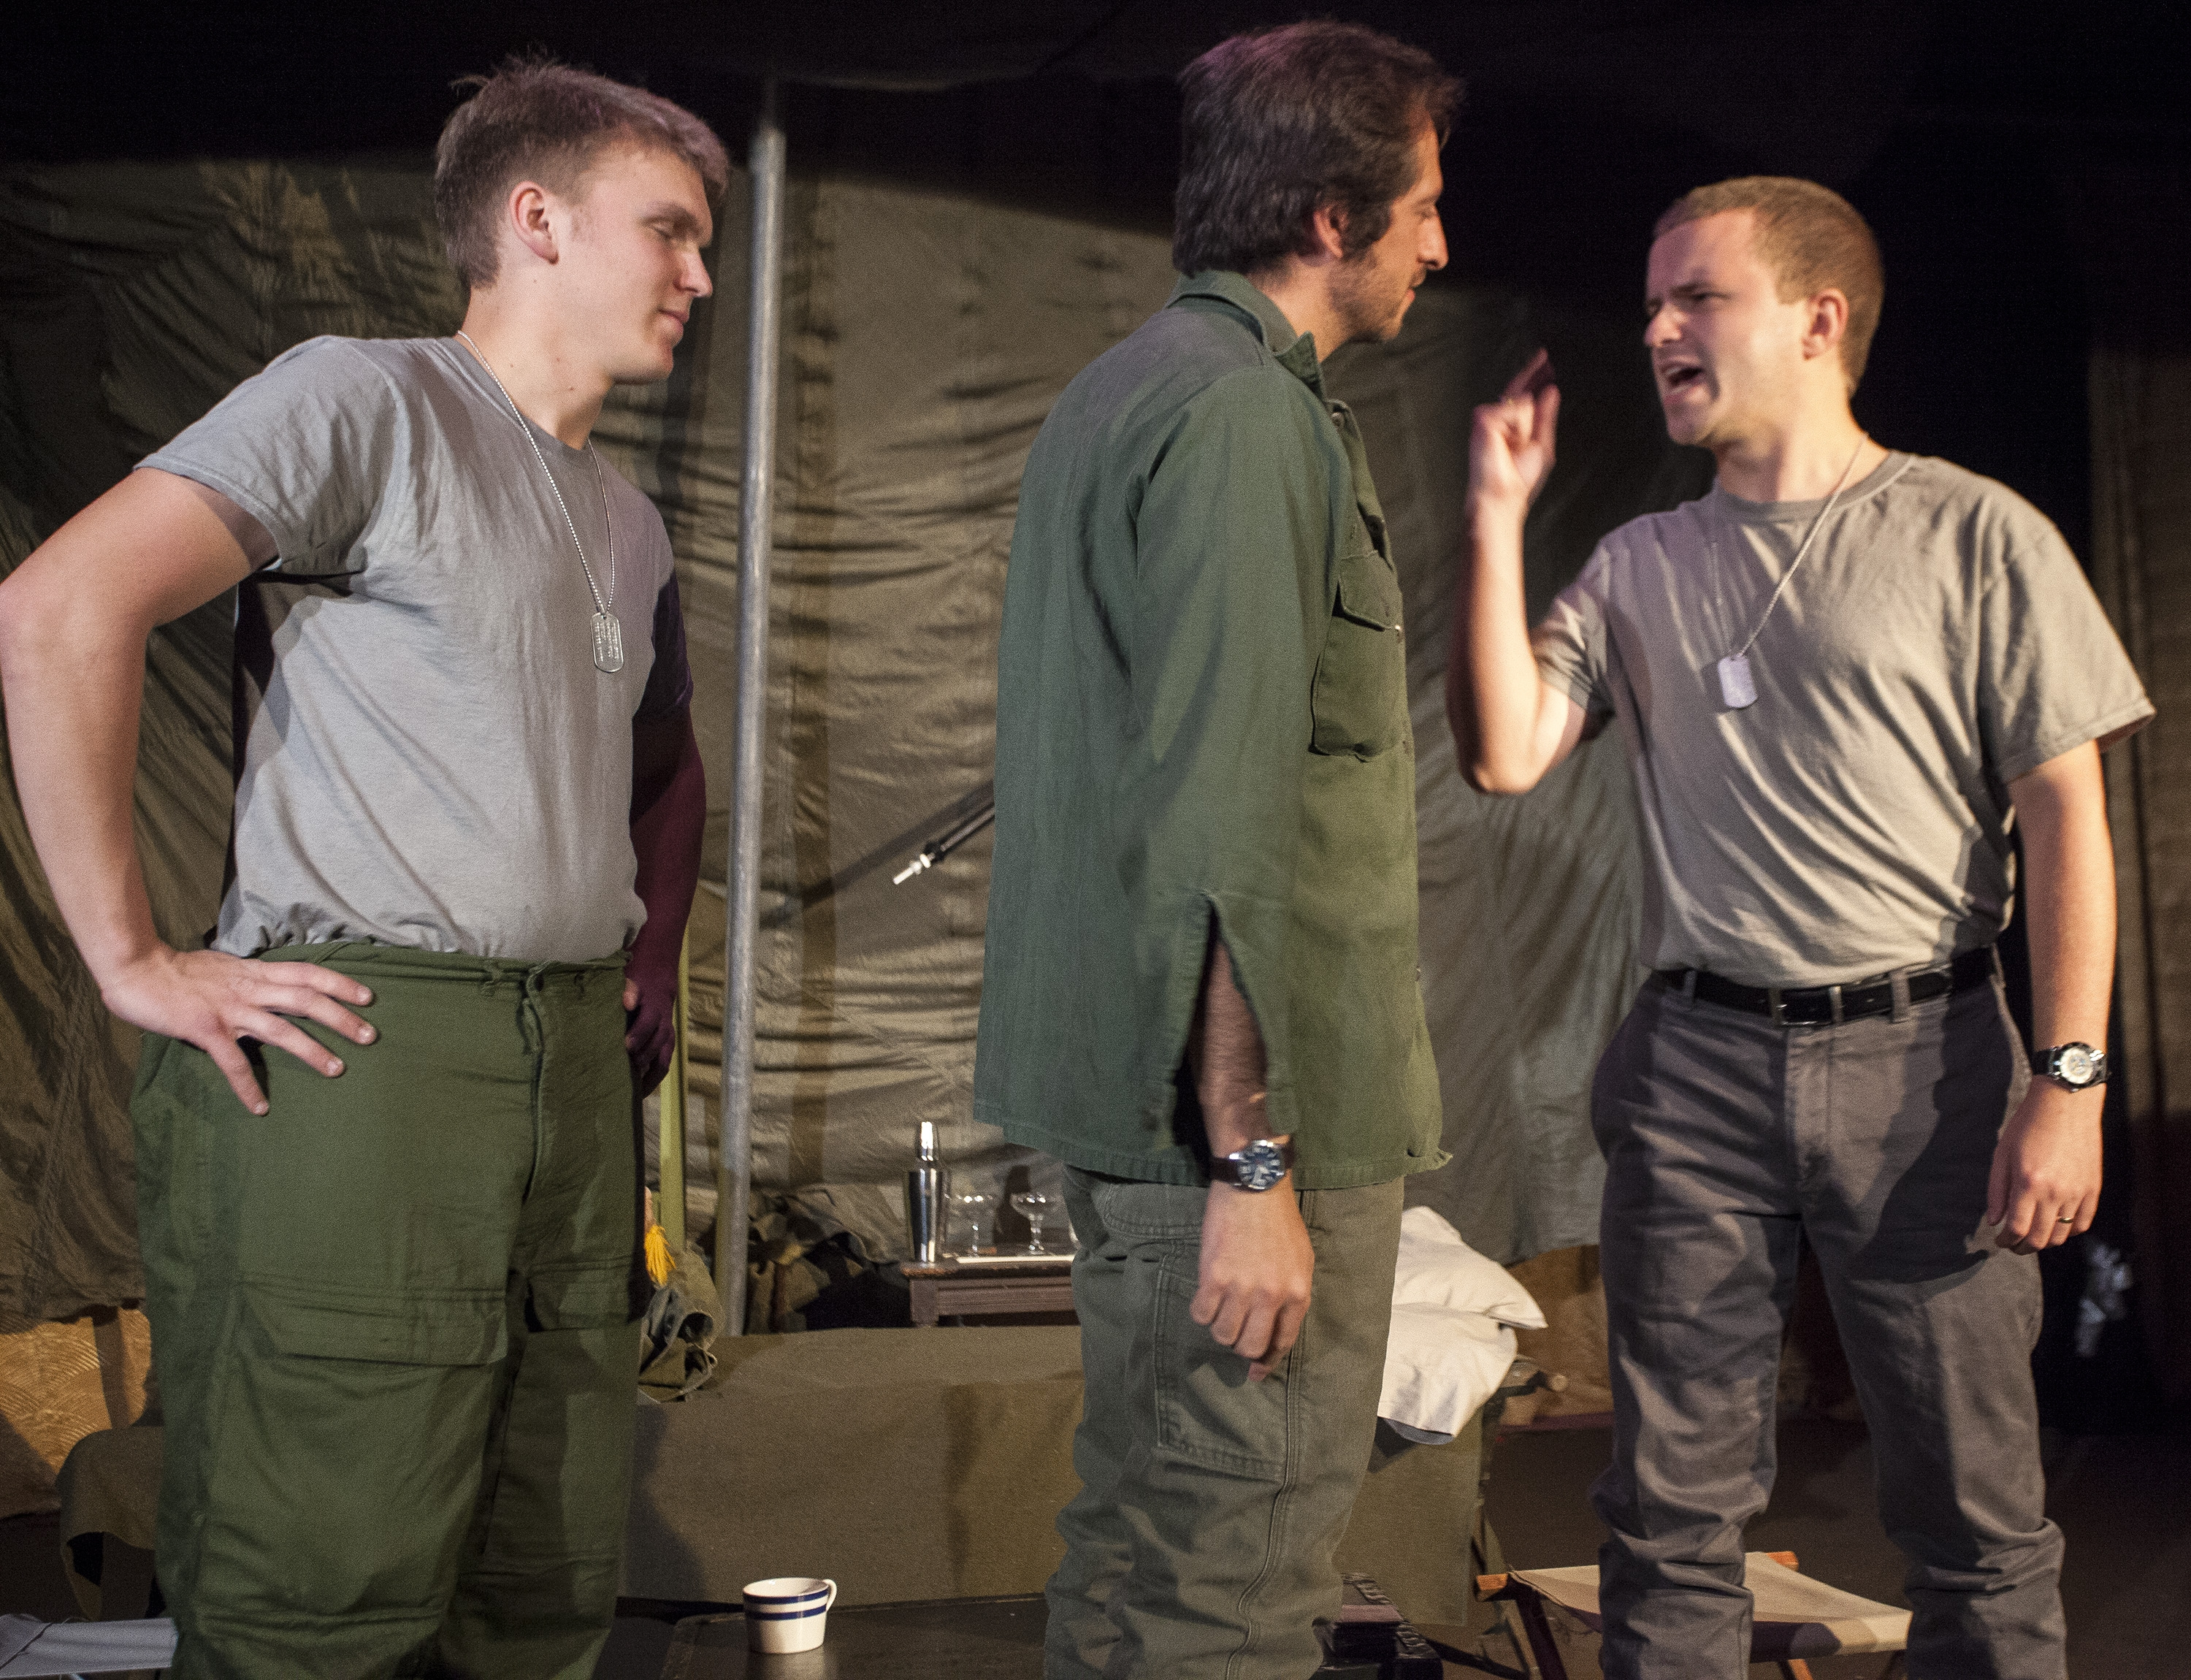 'M*A*S*H'ing together: Pullman Civic Theatre brings in all backgrounds, levels for military play